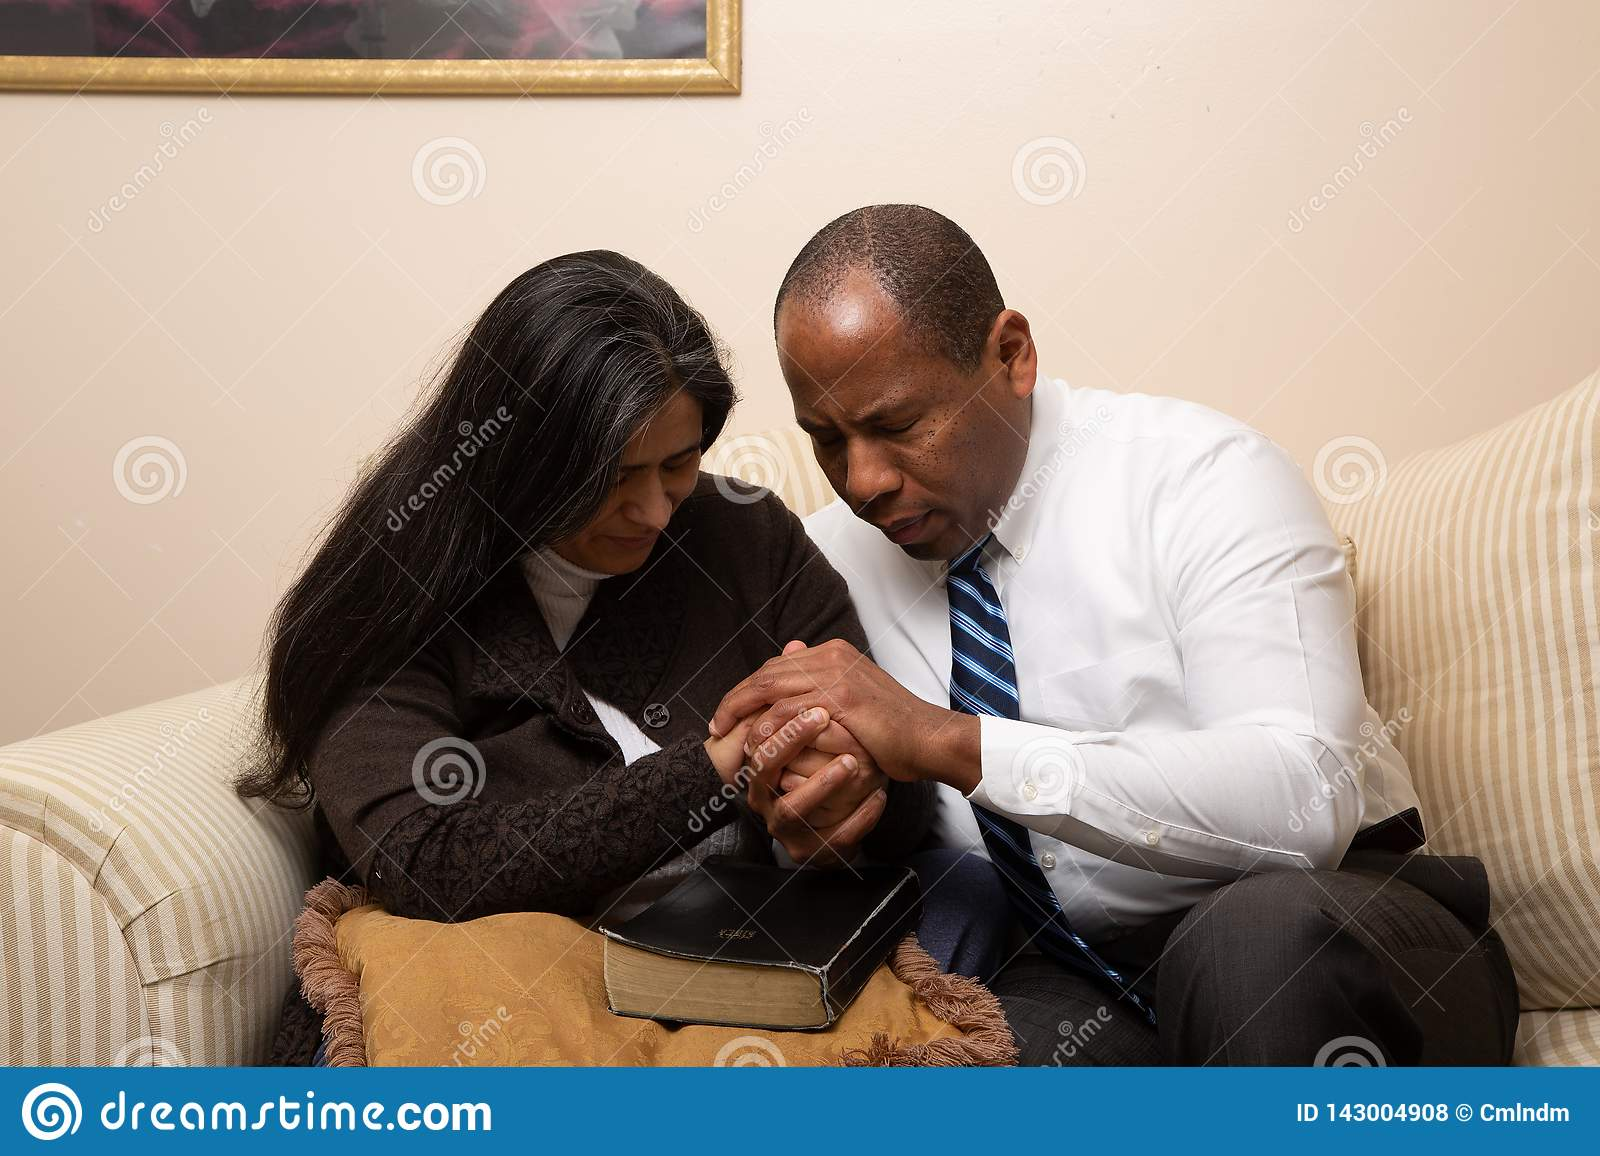 Christian Couple Praying Together competido con mezclado